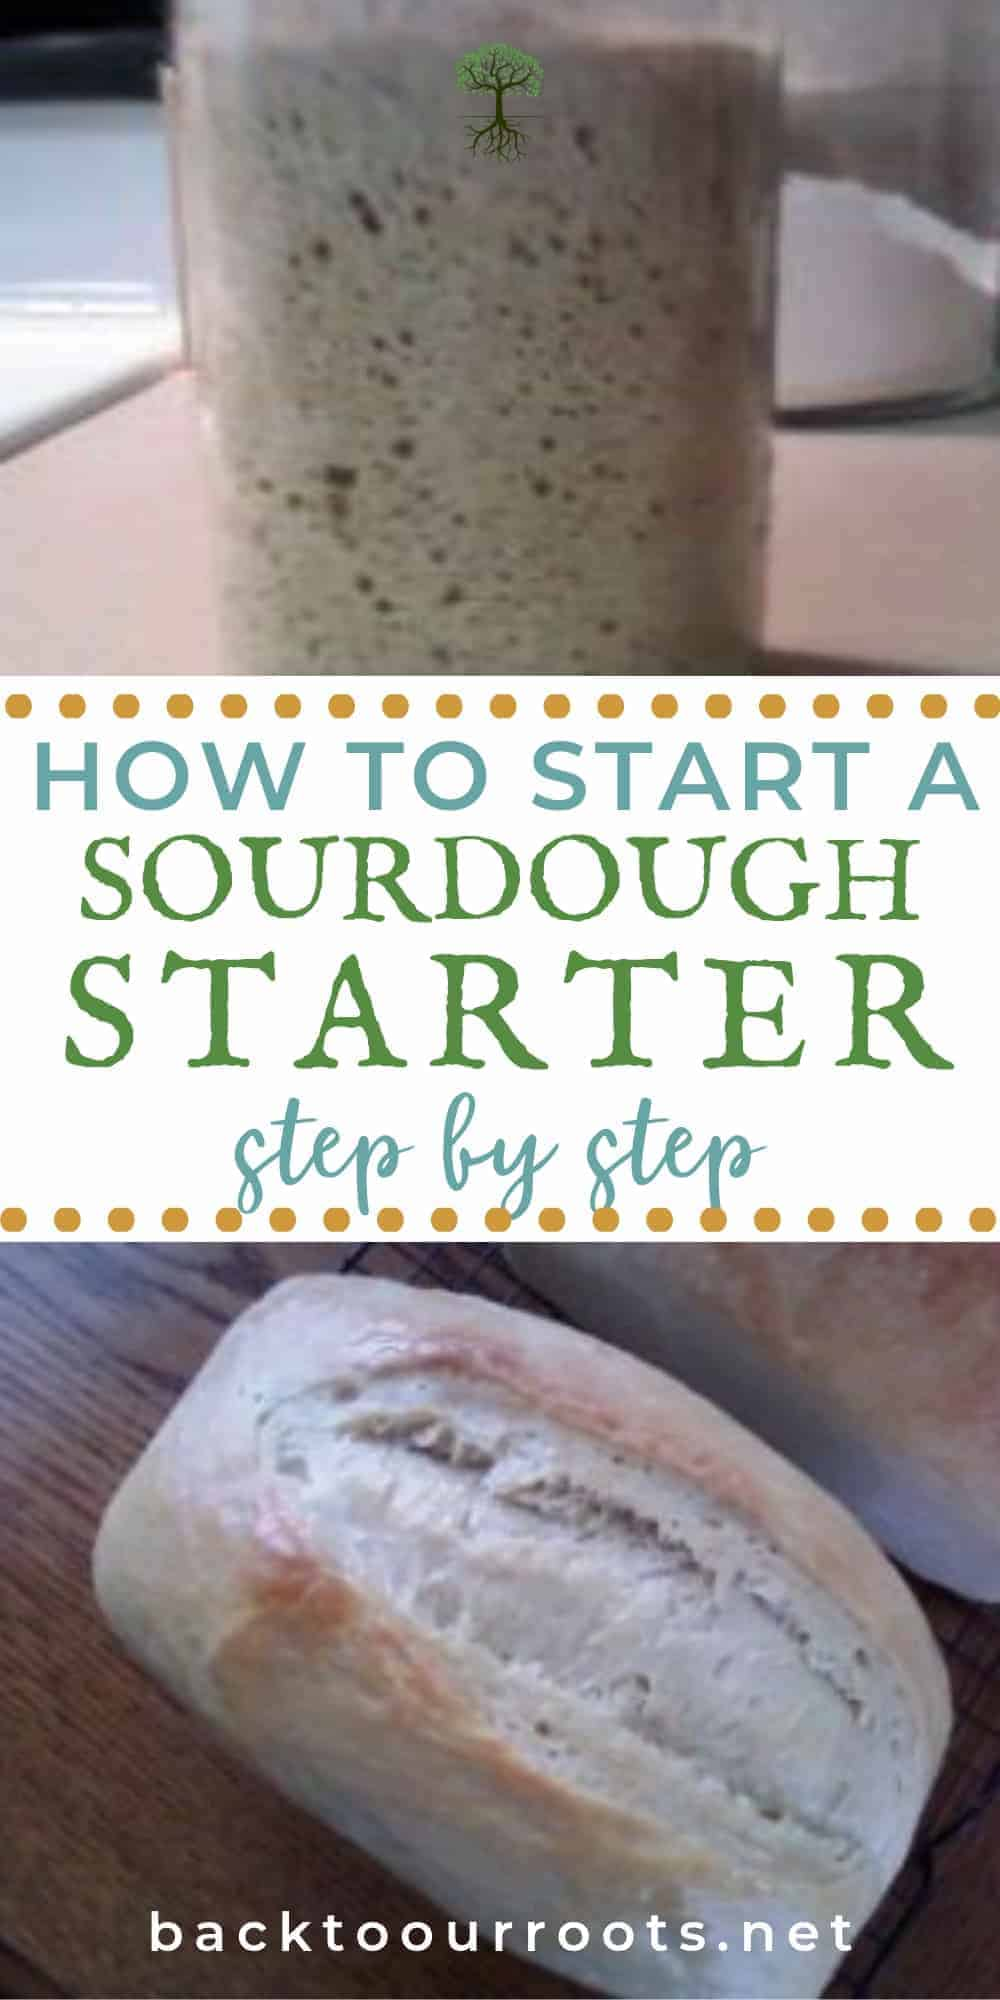 How to Start a Sourdough Starter